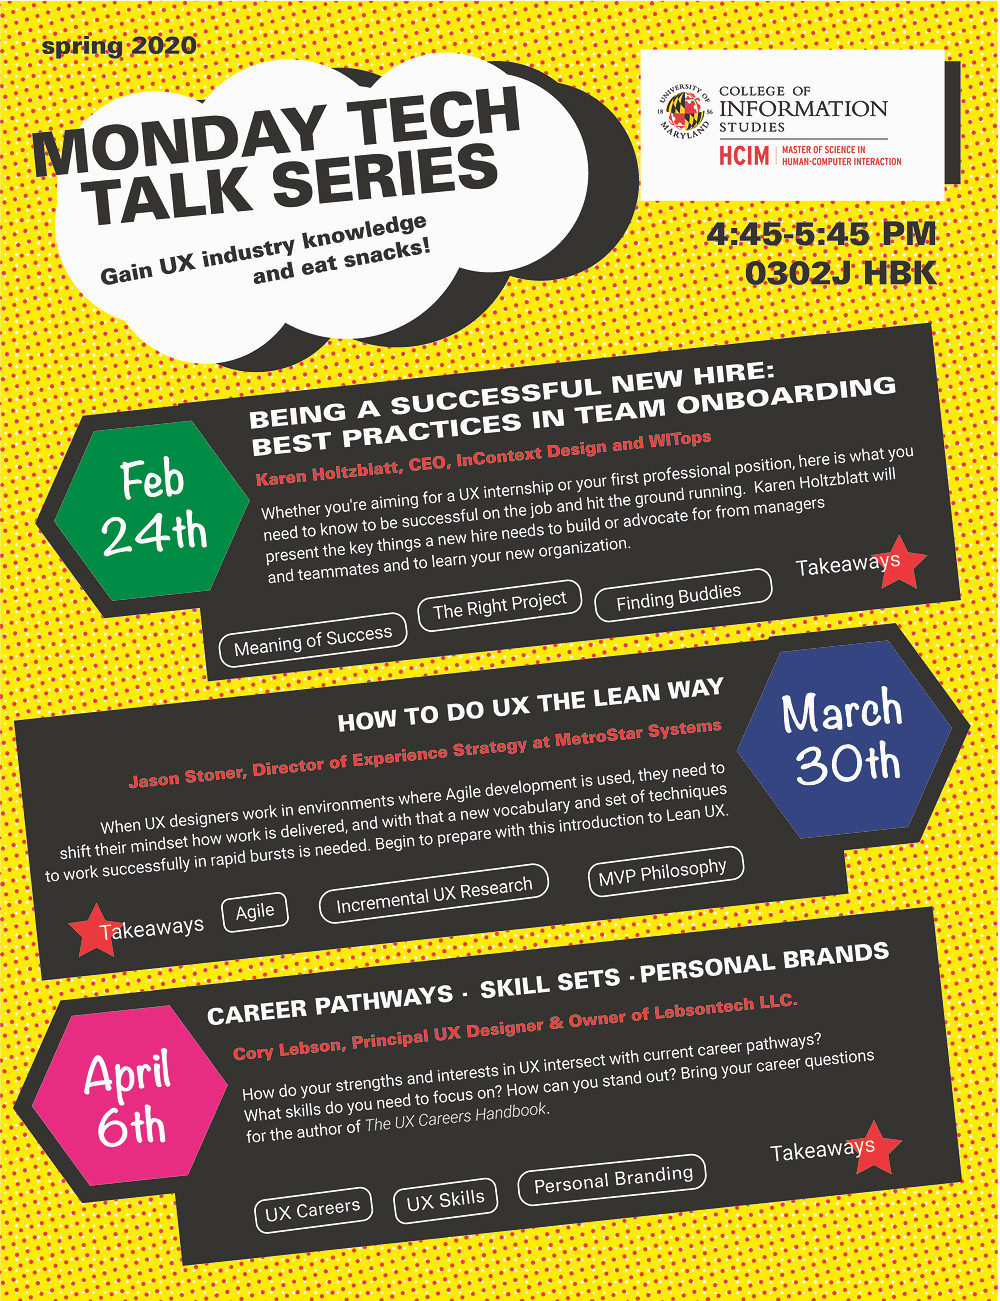 monday tech talk series poster featuring events